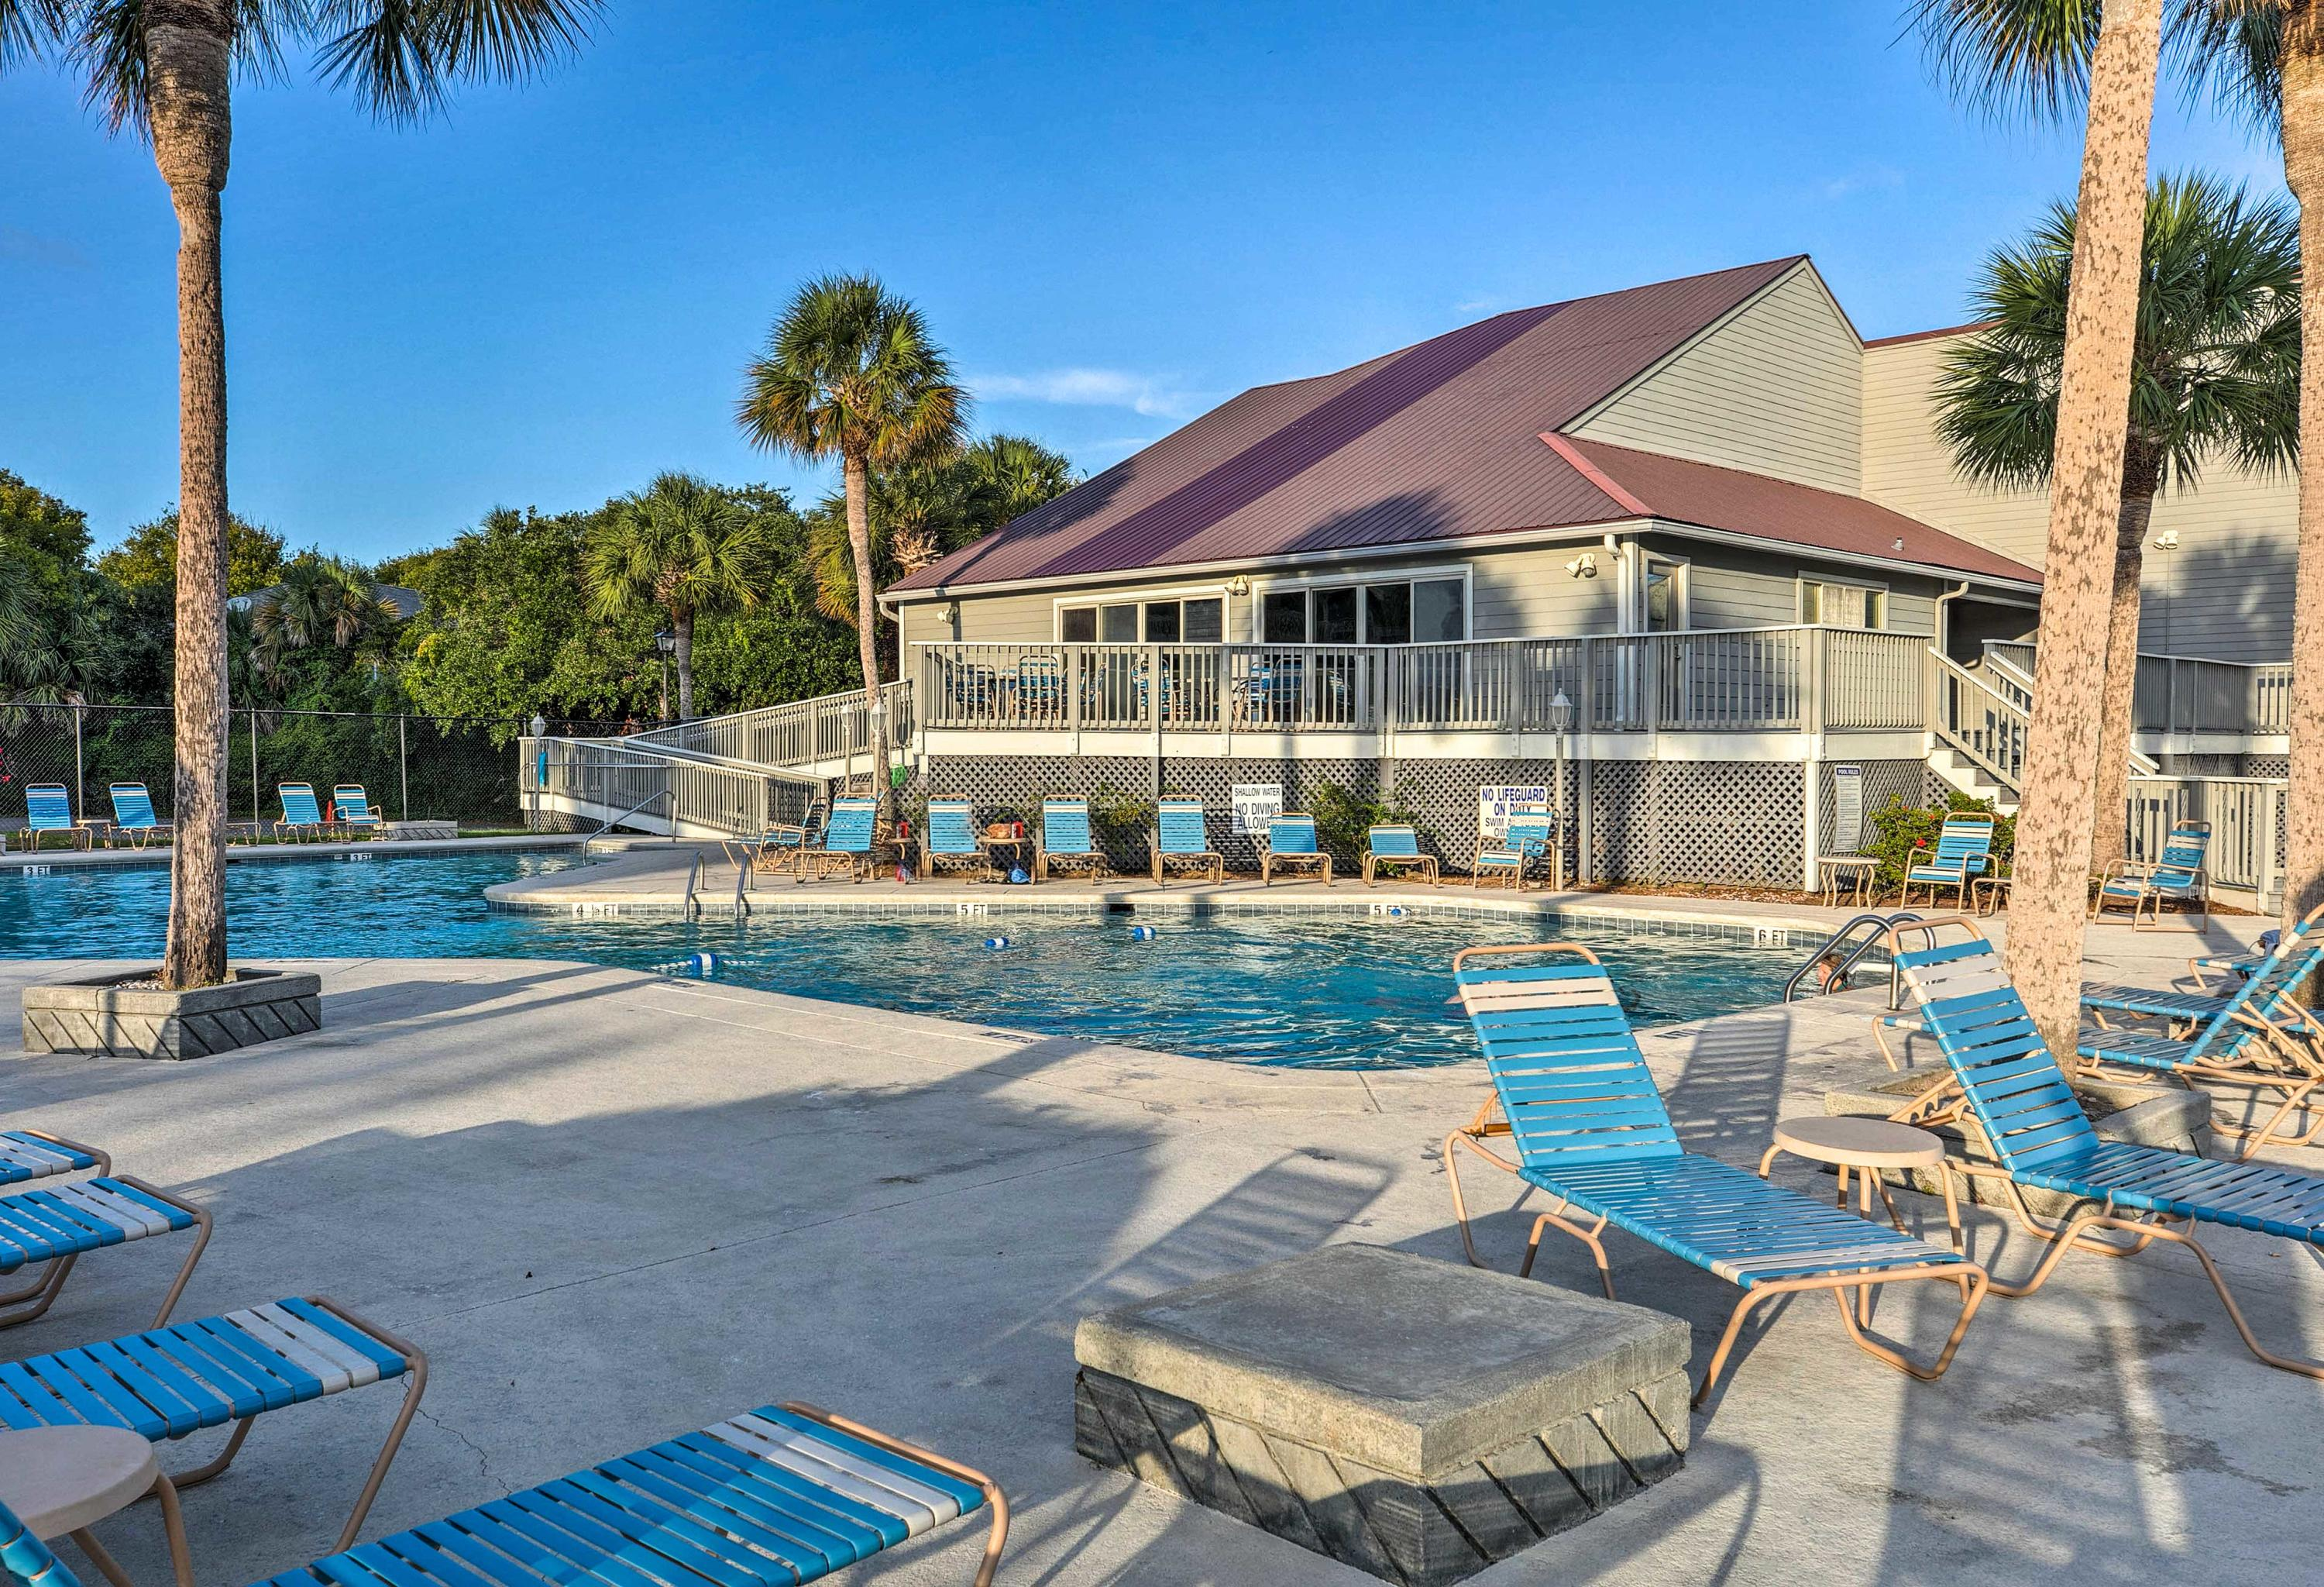 Mariners Cay Homes For Sale - 93 Mariners Cay, Folly Beach, SC - 6